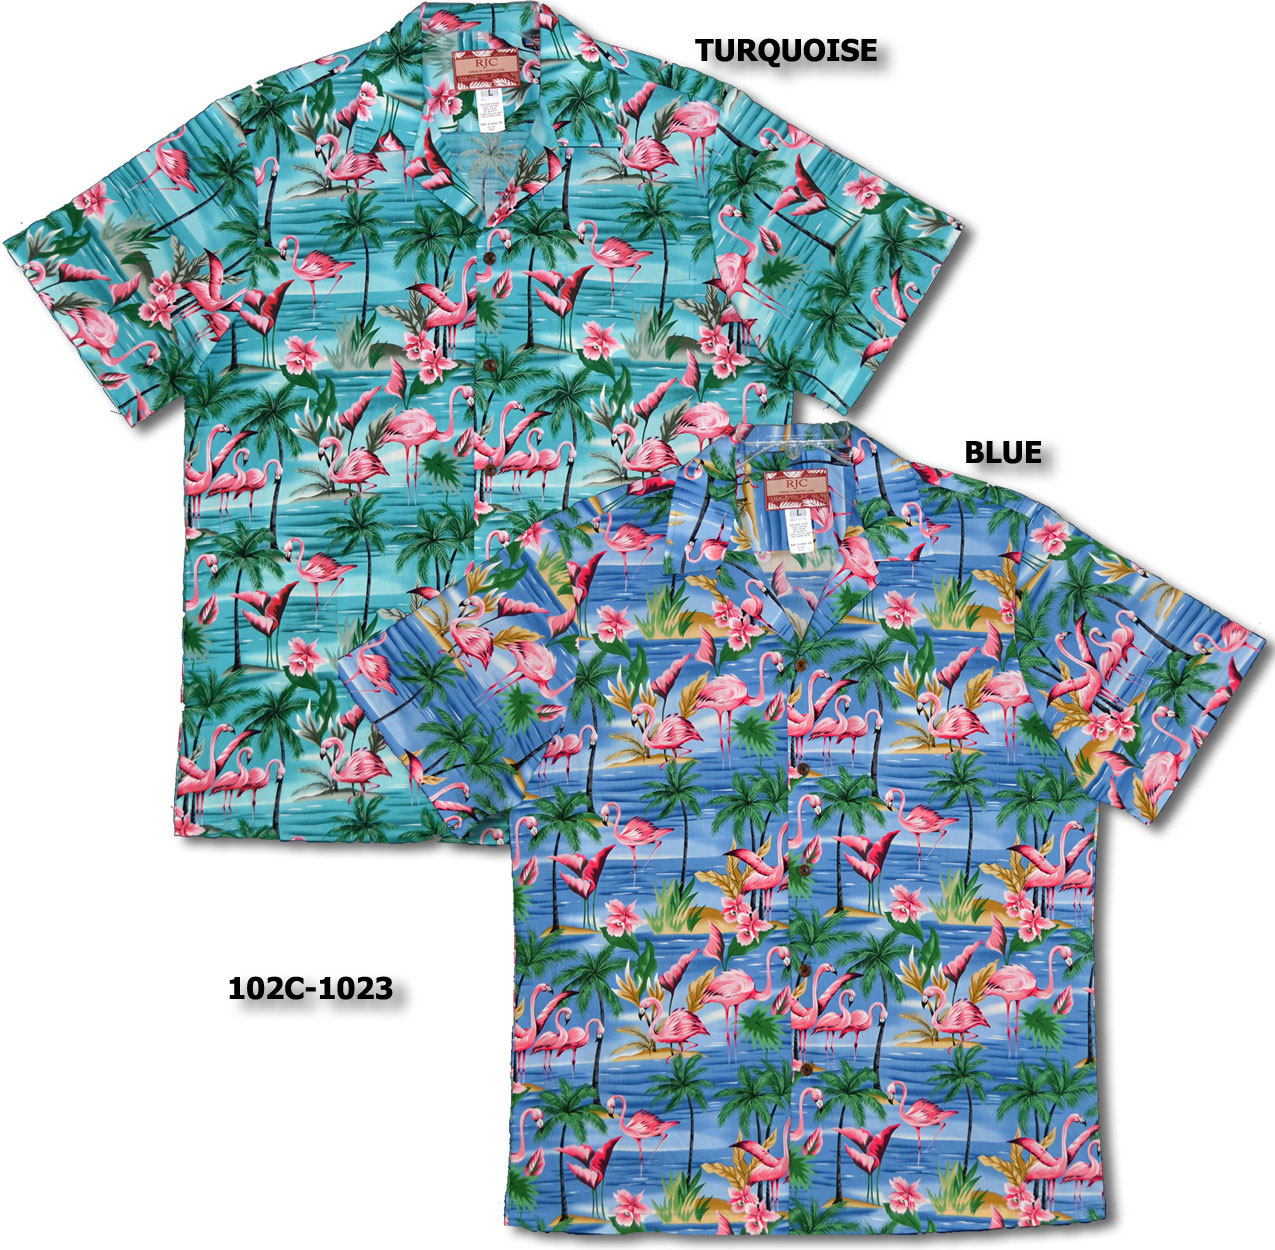 8068fd69 Men's, Women's & Kids Pink Flamingo Made in Hawaii Clothing - Men's, Boy's,  Women's & Girl's Pink Flamingos Hawaiian Shirts, Dresses Aloha Apparel